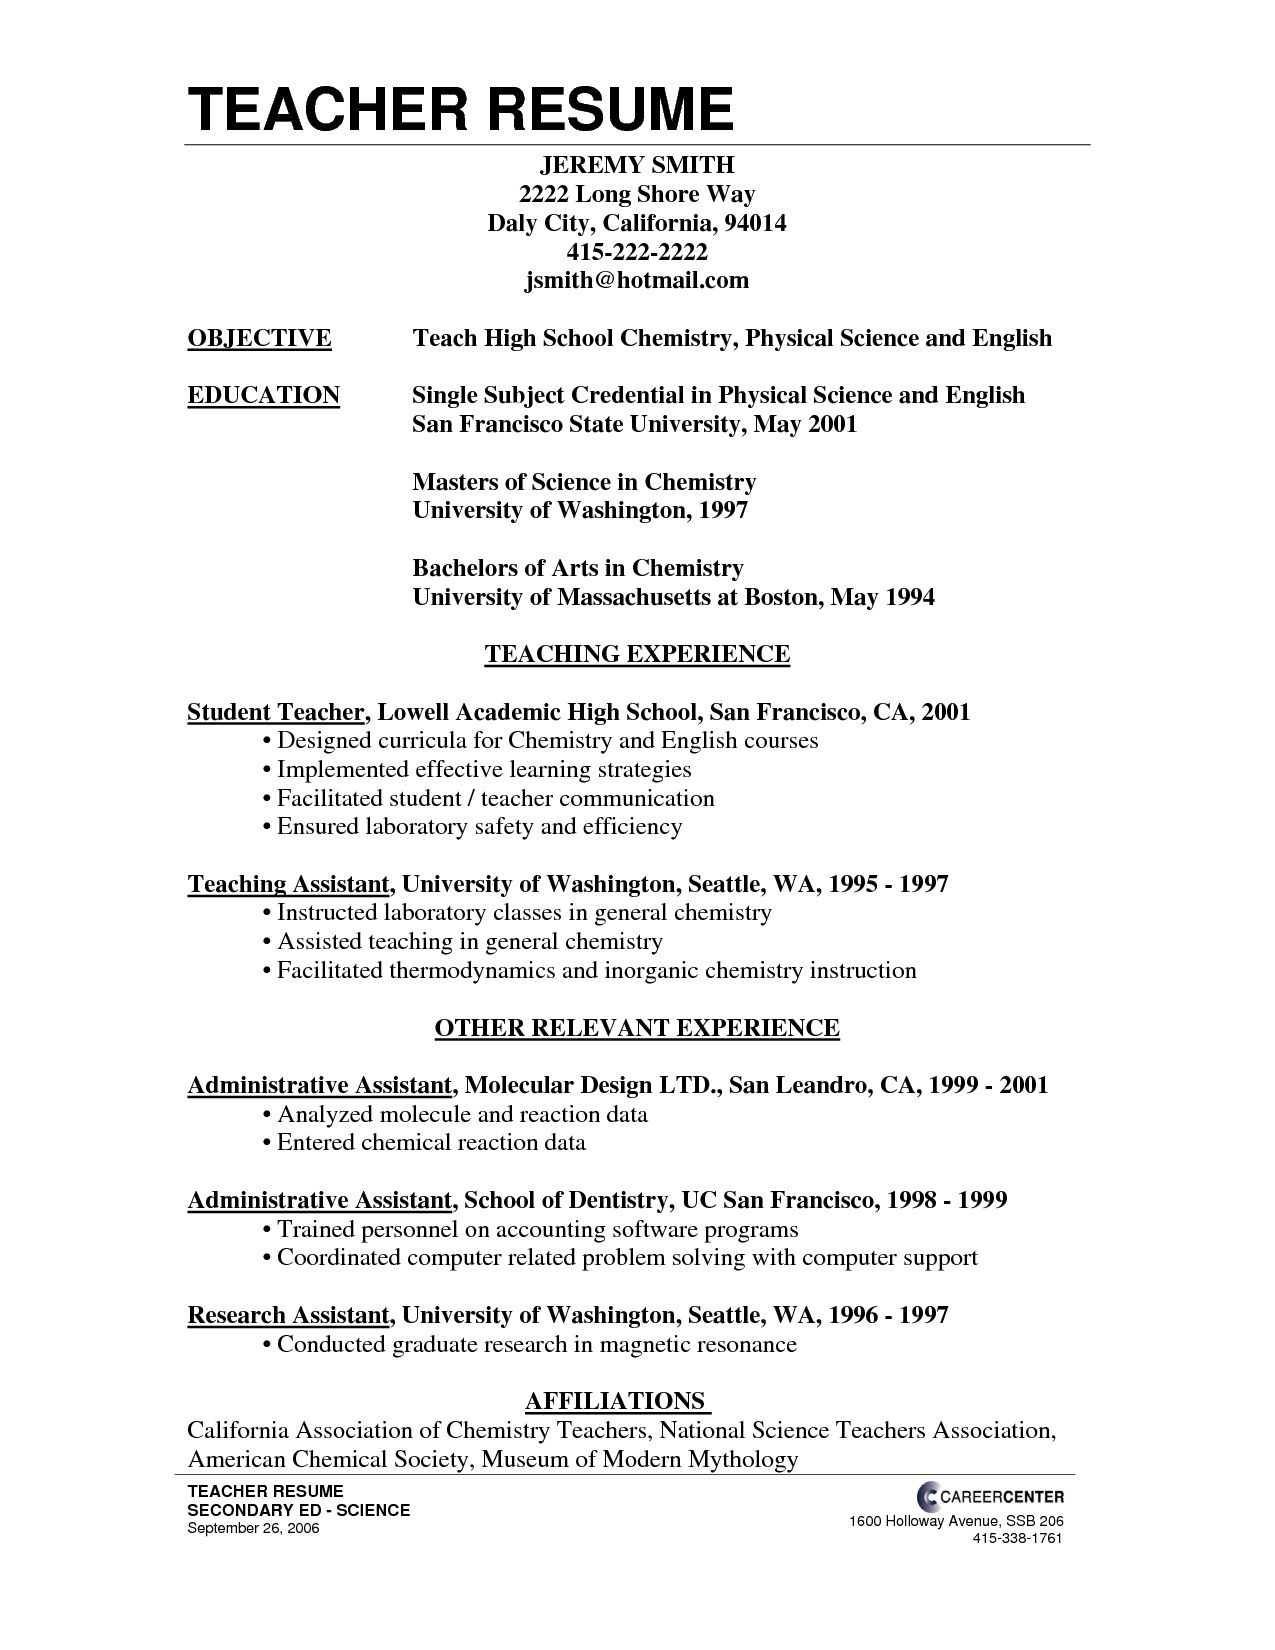 high school teacher resume jobresumesample com high high school teacher resume jobresumesample com 547 high